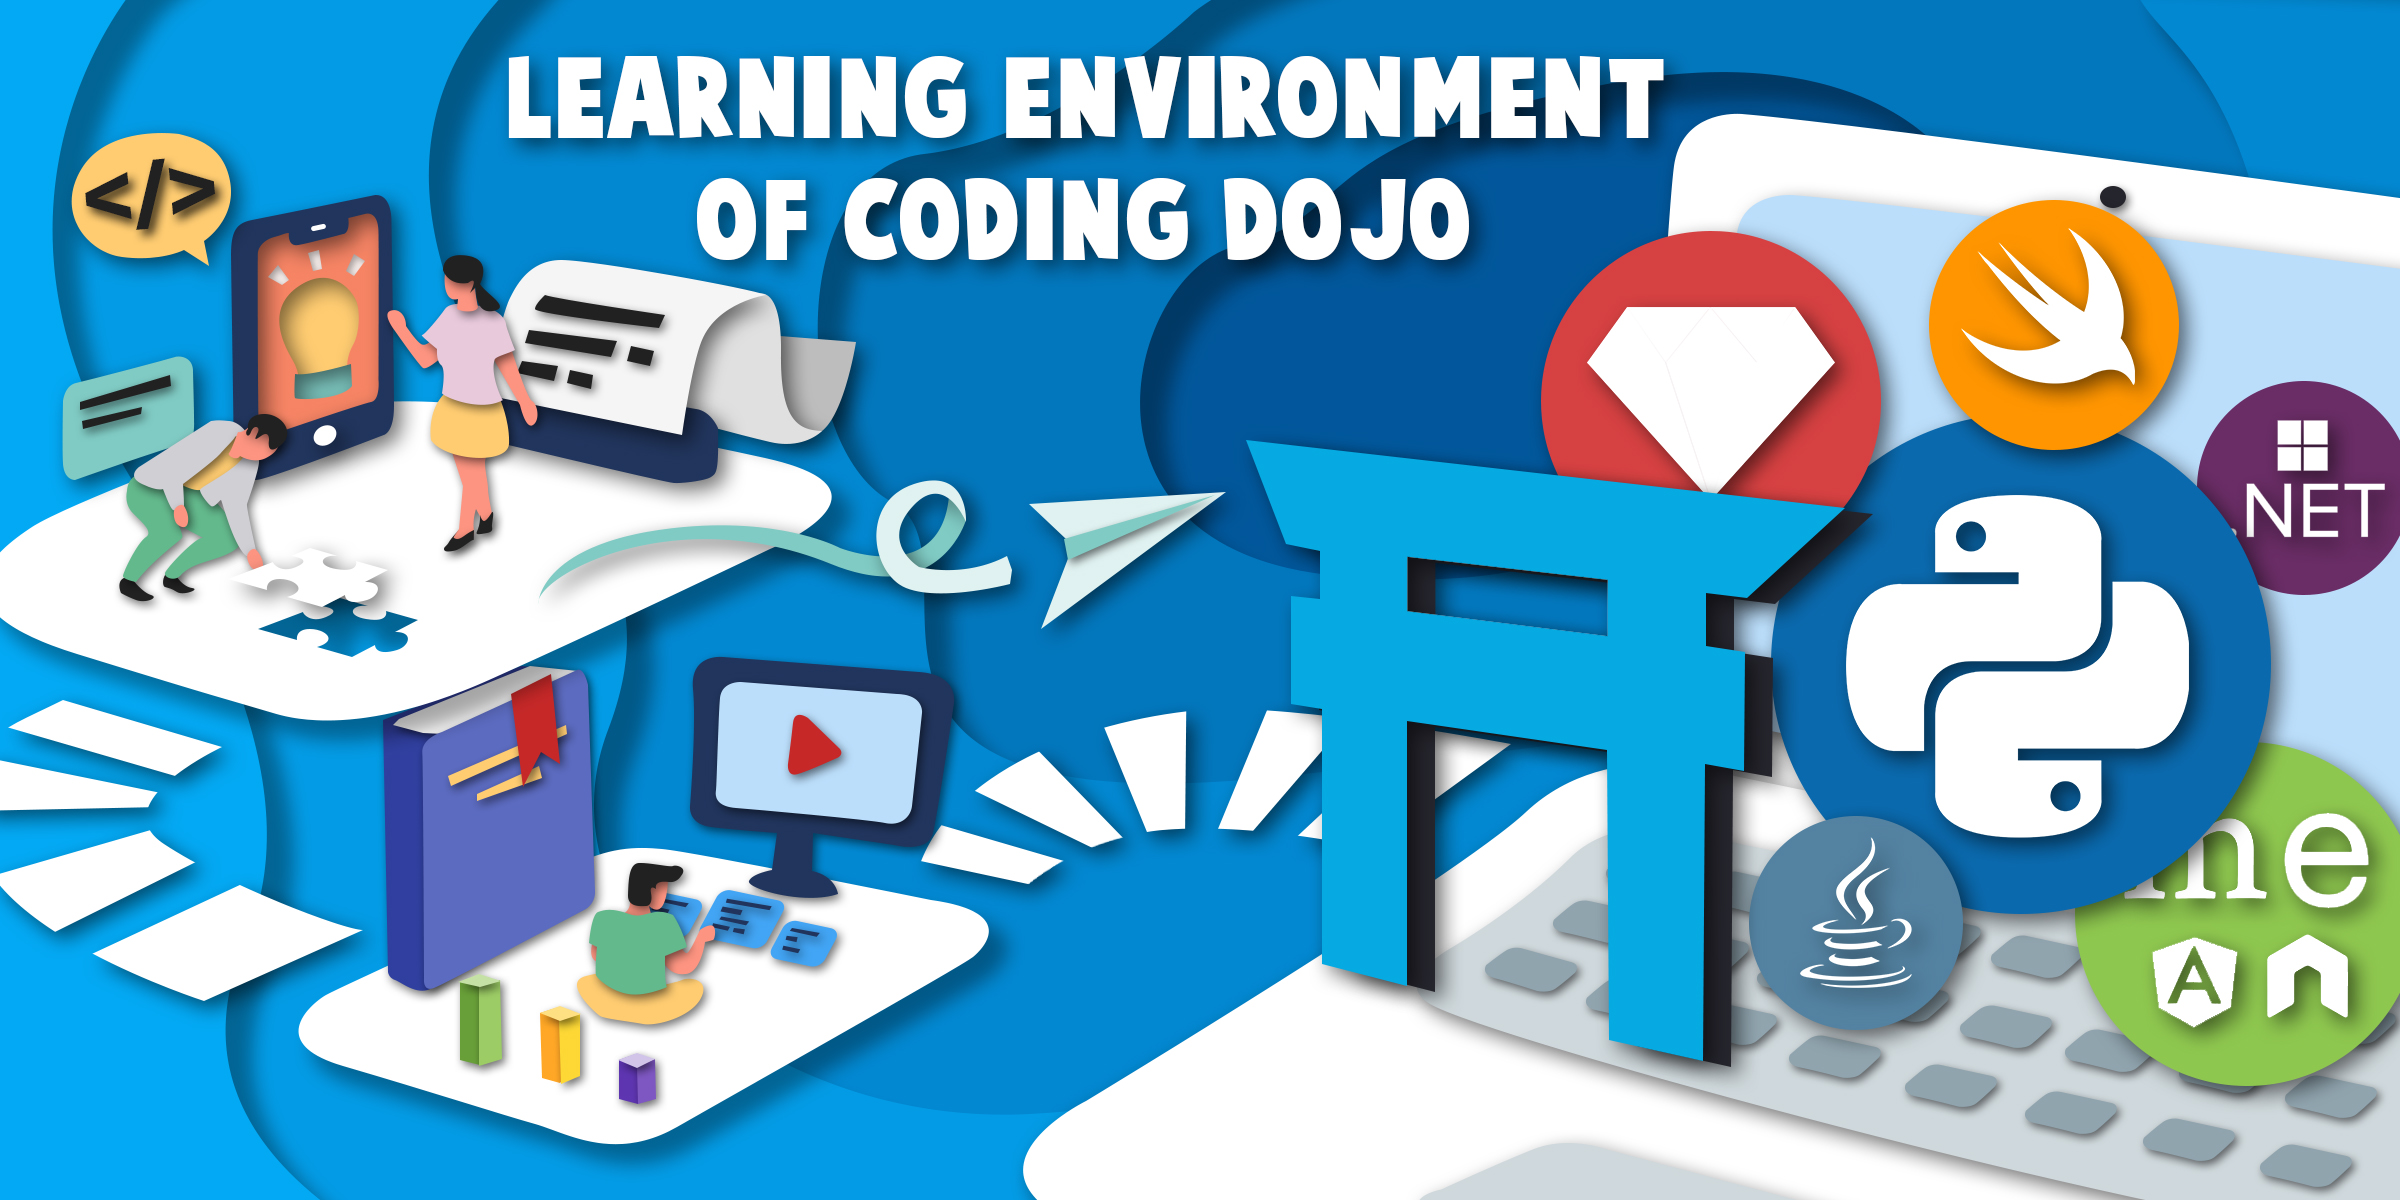 Impacts of the Learning Environment on Developer's Progress